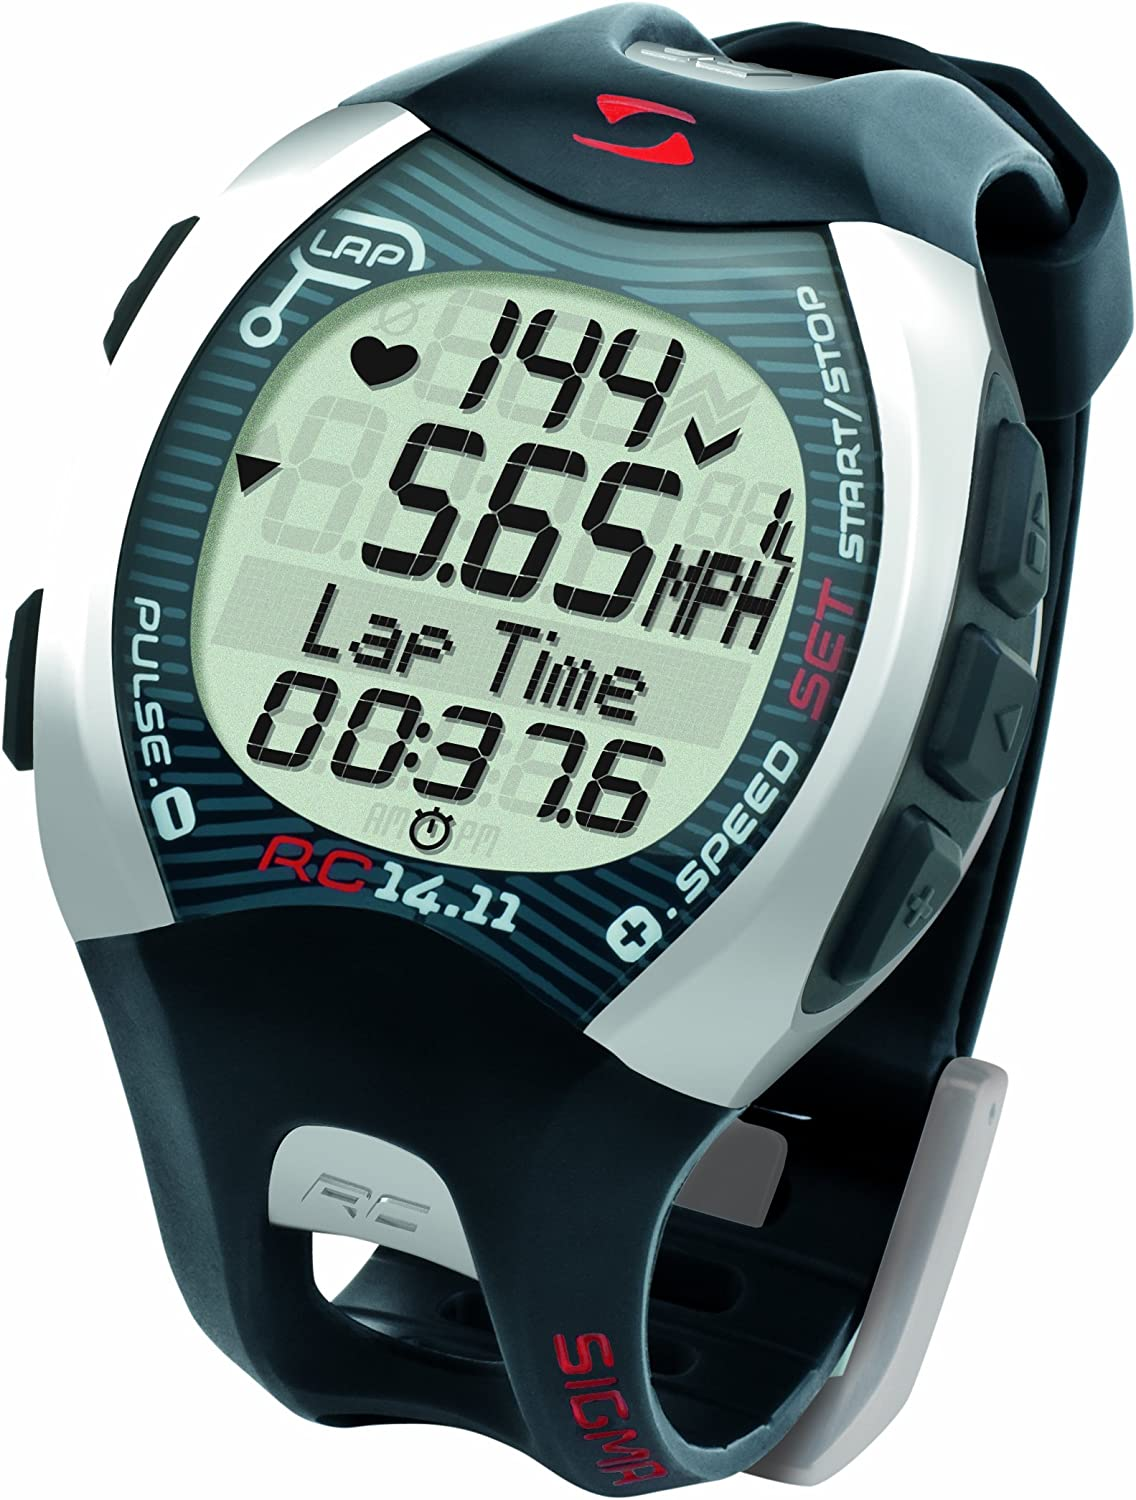 Sigma Rc14.11 Running Rate Max 54% OFF Heart Monitor Limited price